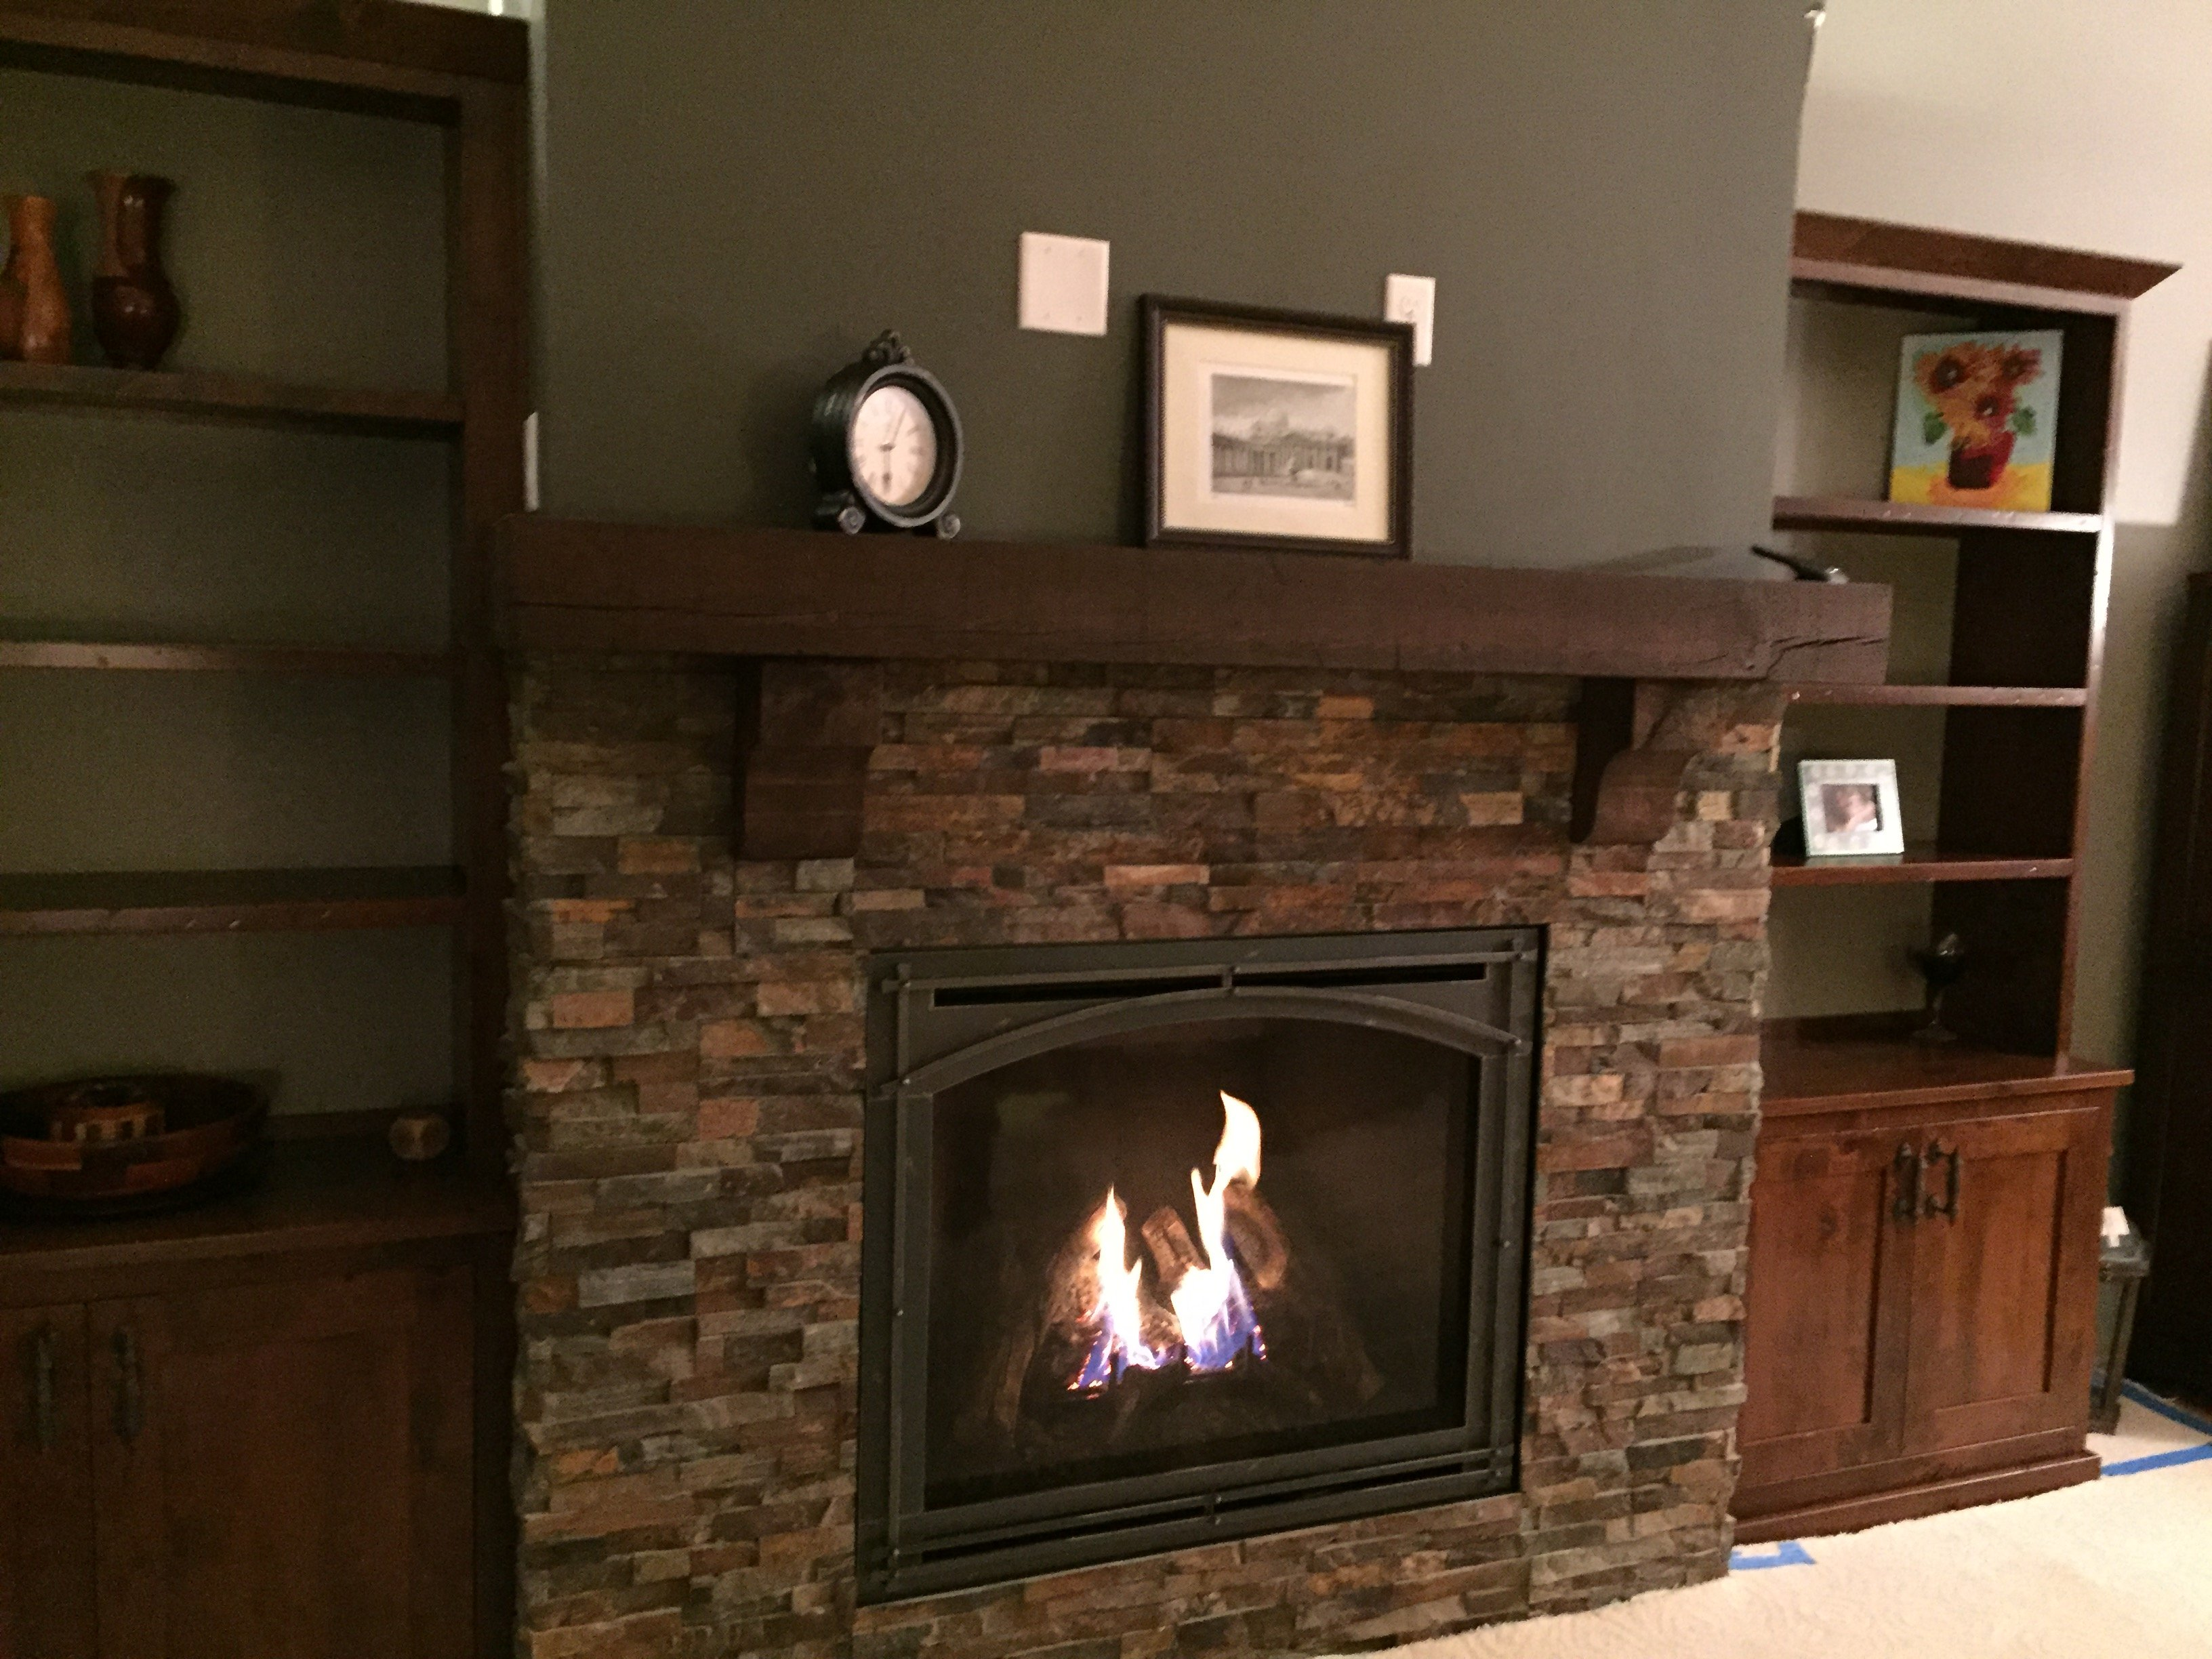 Kozy Heat, Bayport w/Arched Mission Screen Front in Weathered Charcoal, traditional fireplace